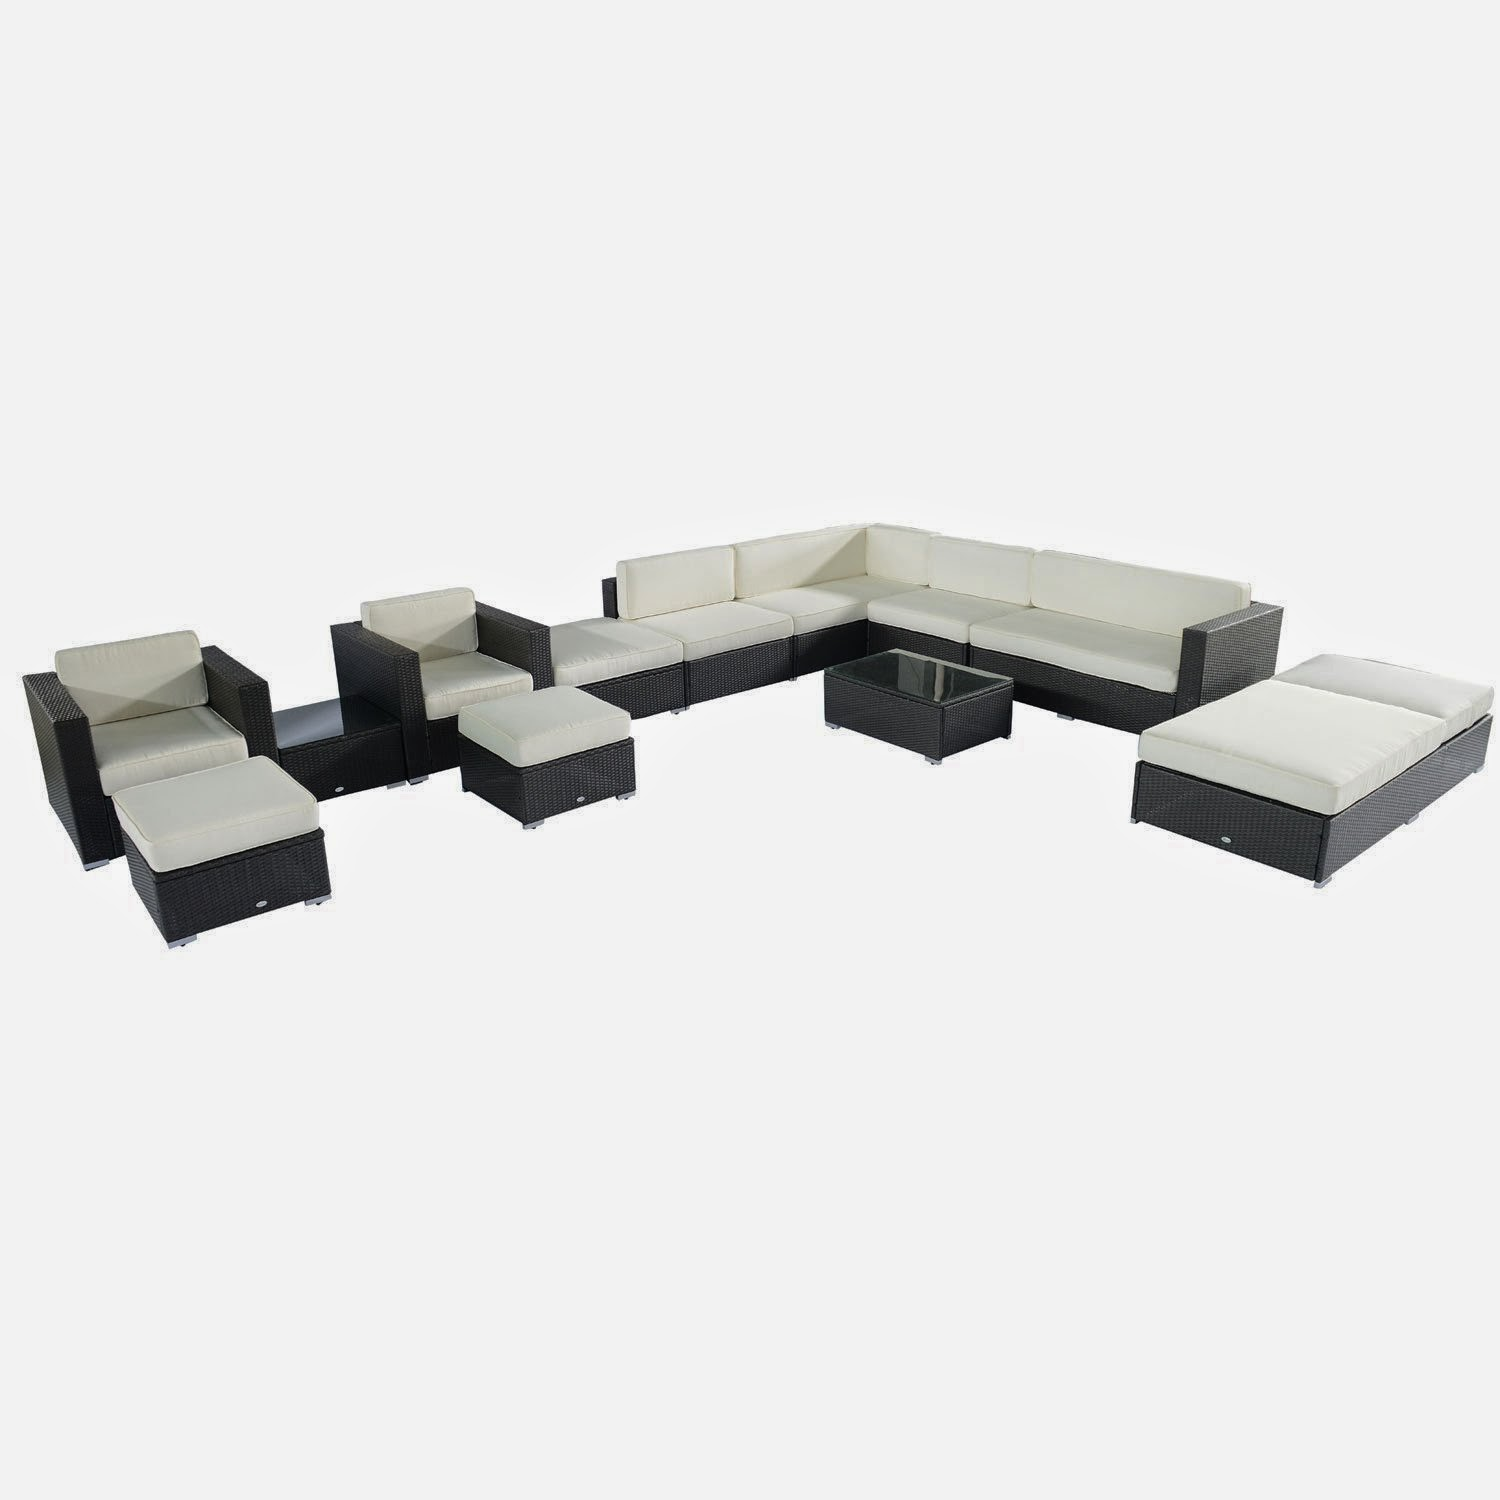 Outsunny Outdoor Rattan Sectional Furniture - Outdoor ...